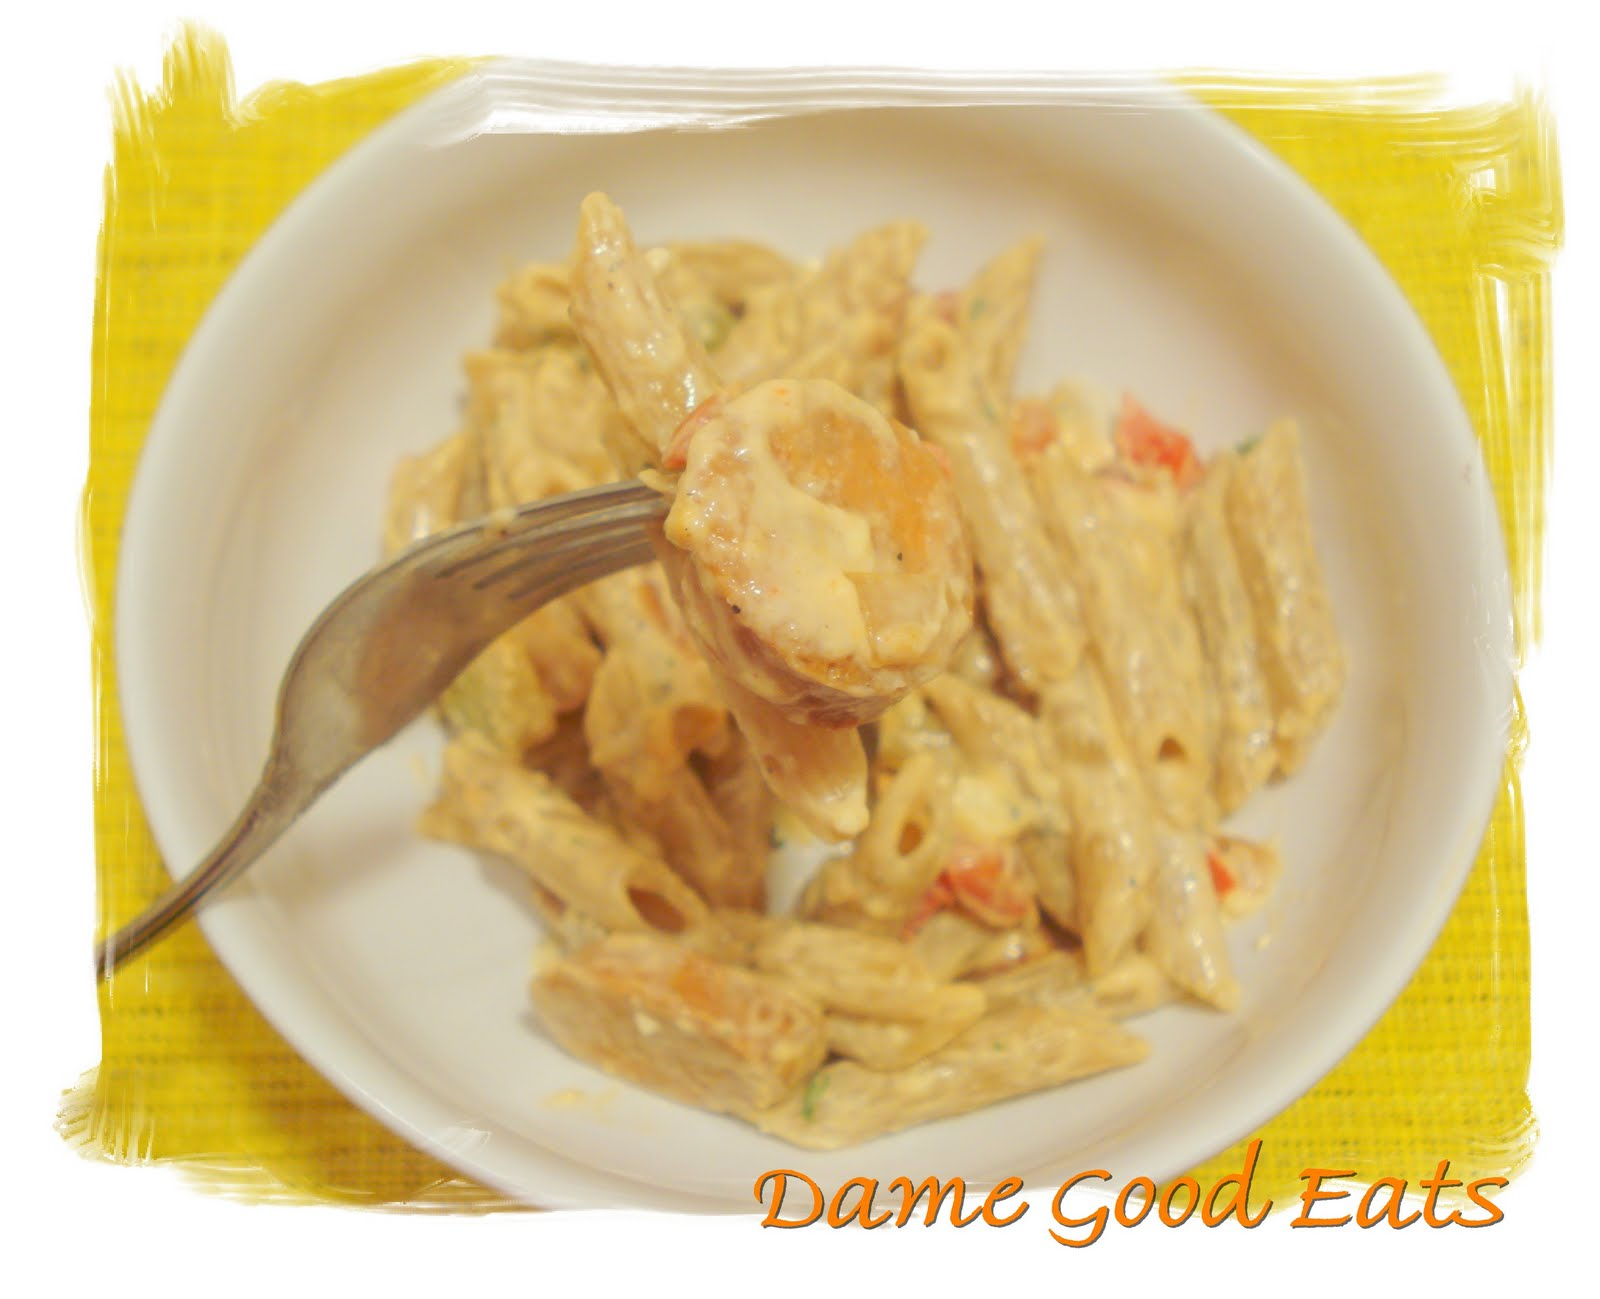 Dame Good Eats: Buffalo Chicken-Sausage Penne